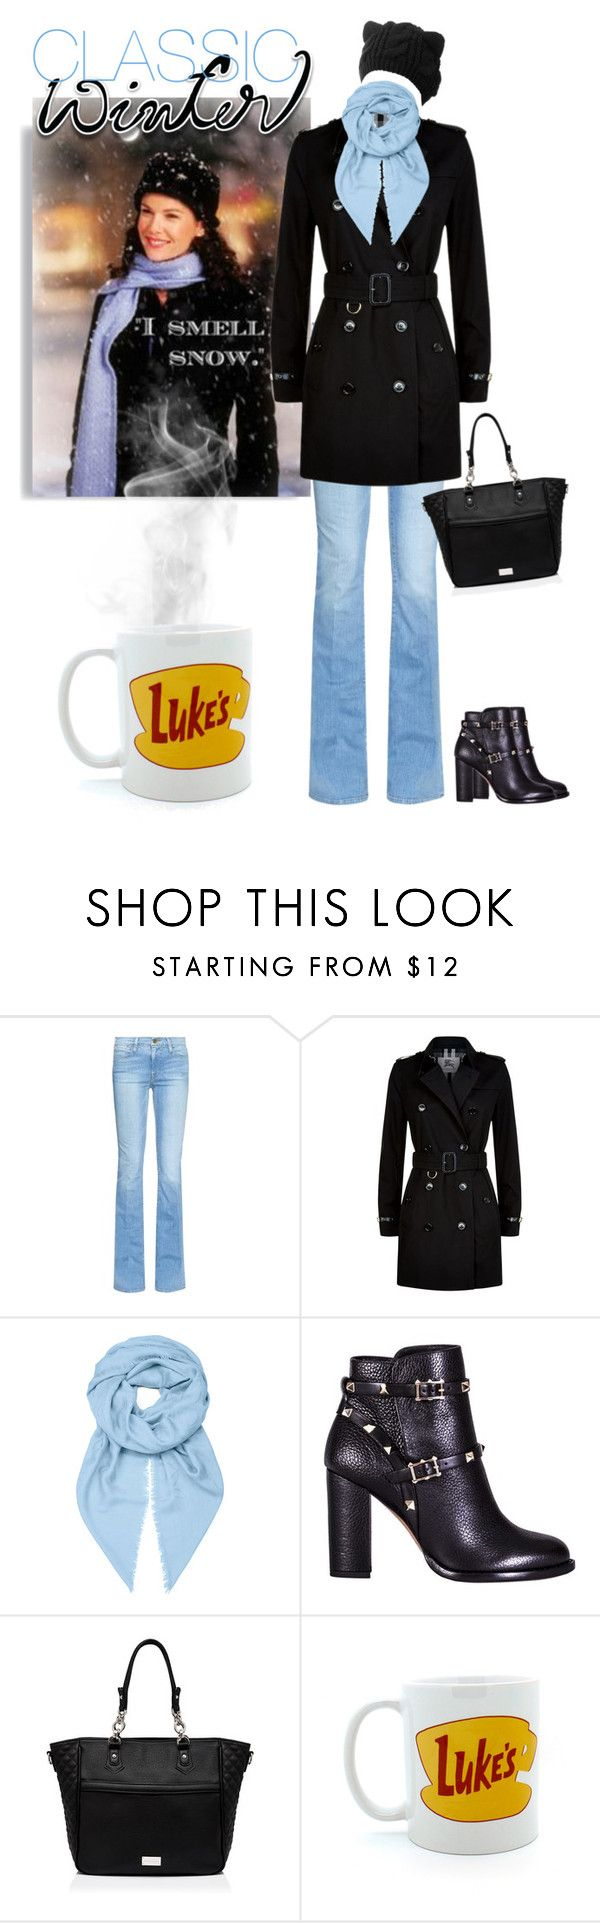 """""""Classic Winter Looks: Lorelai Gilmore"""" by mk-style ❤ liked on Polyvore featuring Frame Denim, Burberry, Loewe, Valentino and Forever New"""